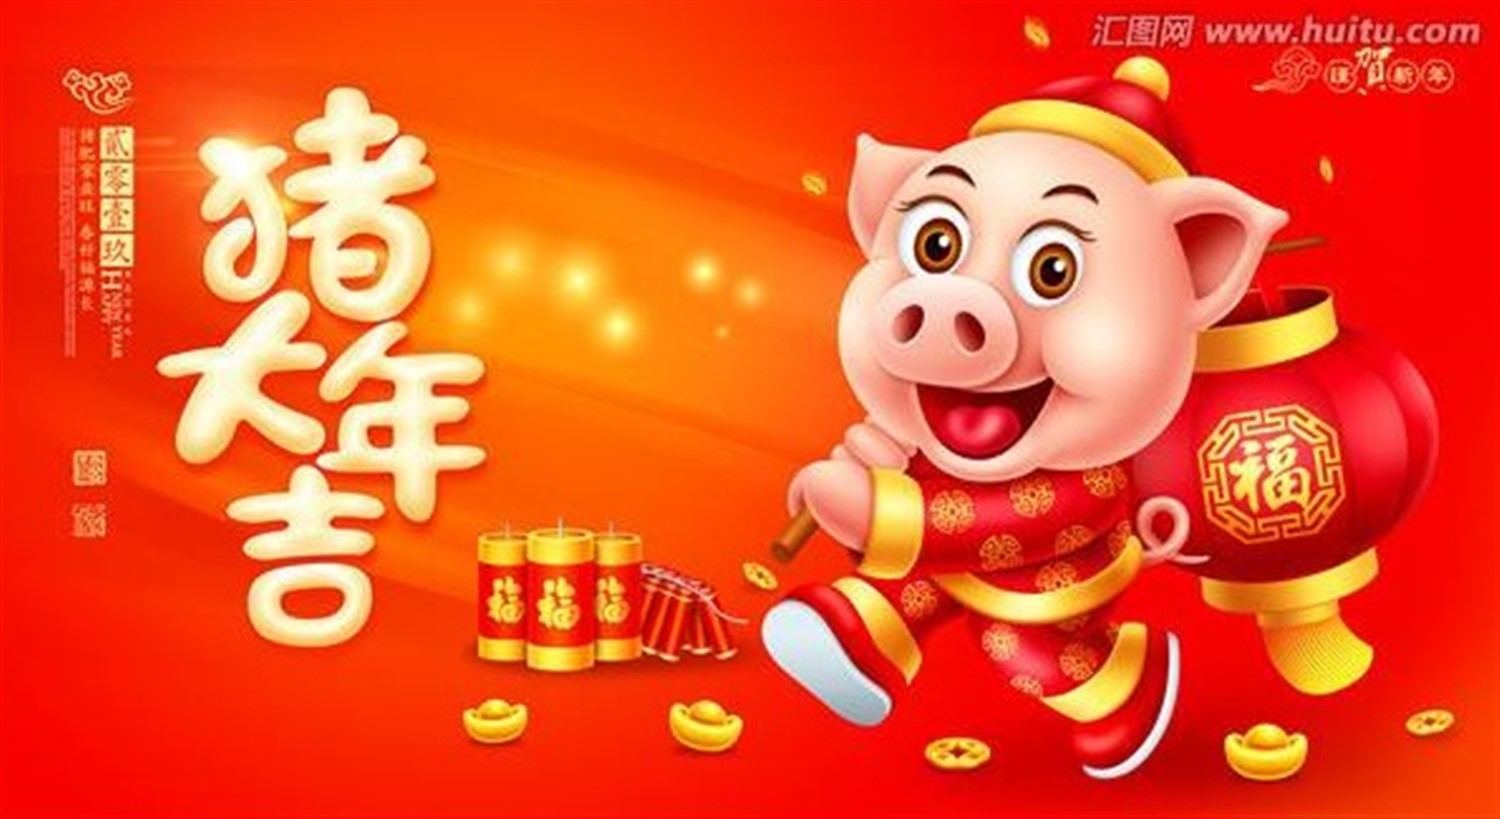 60 Seconds over Sinoland-Happy Chinese New Year of the Pig from